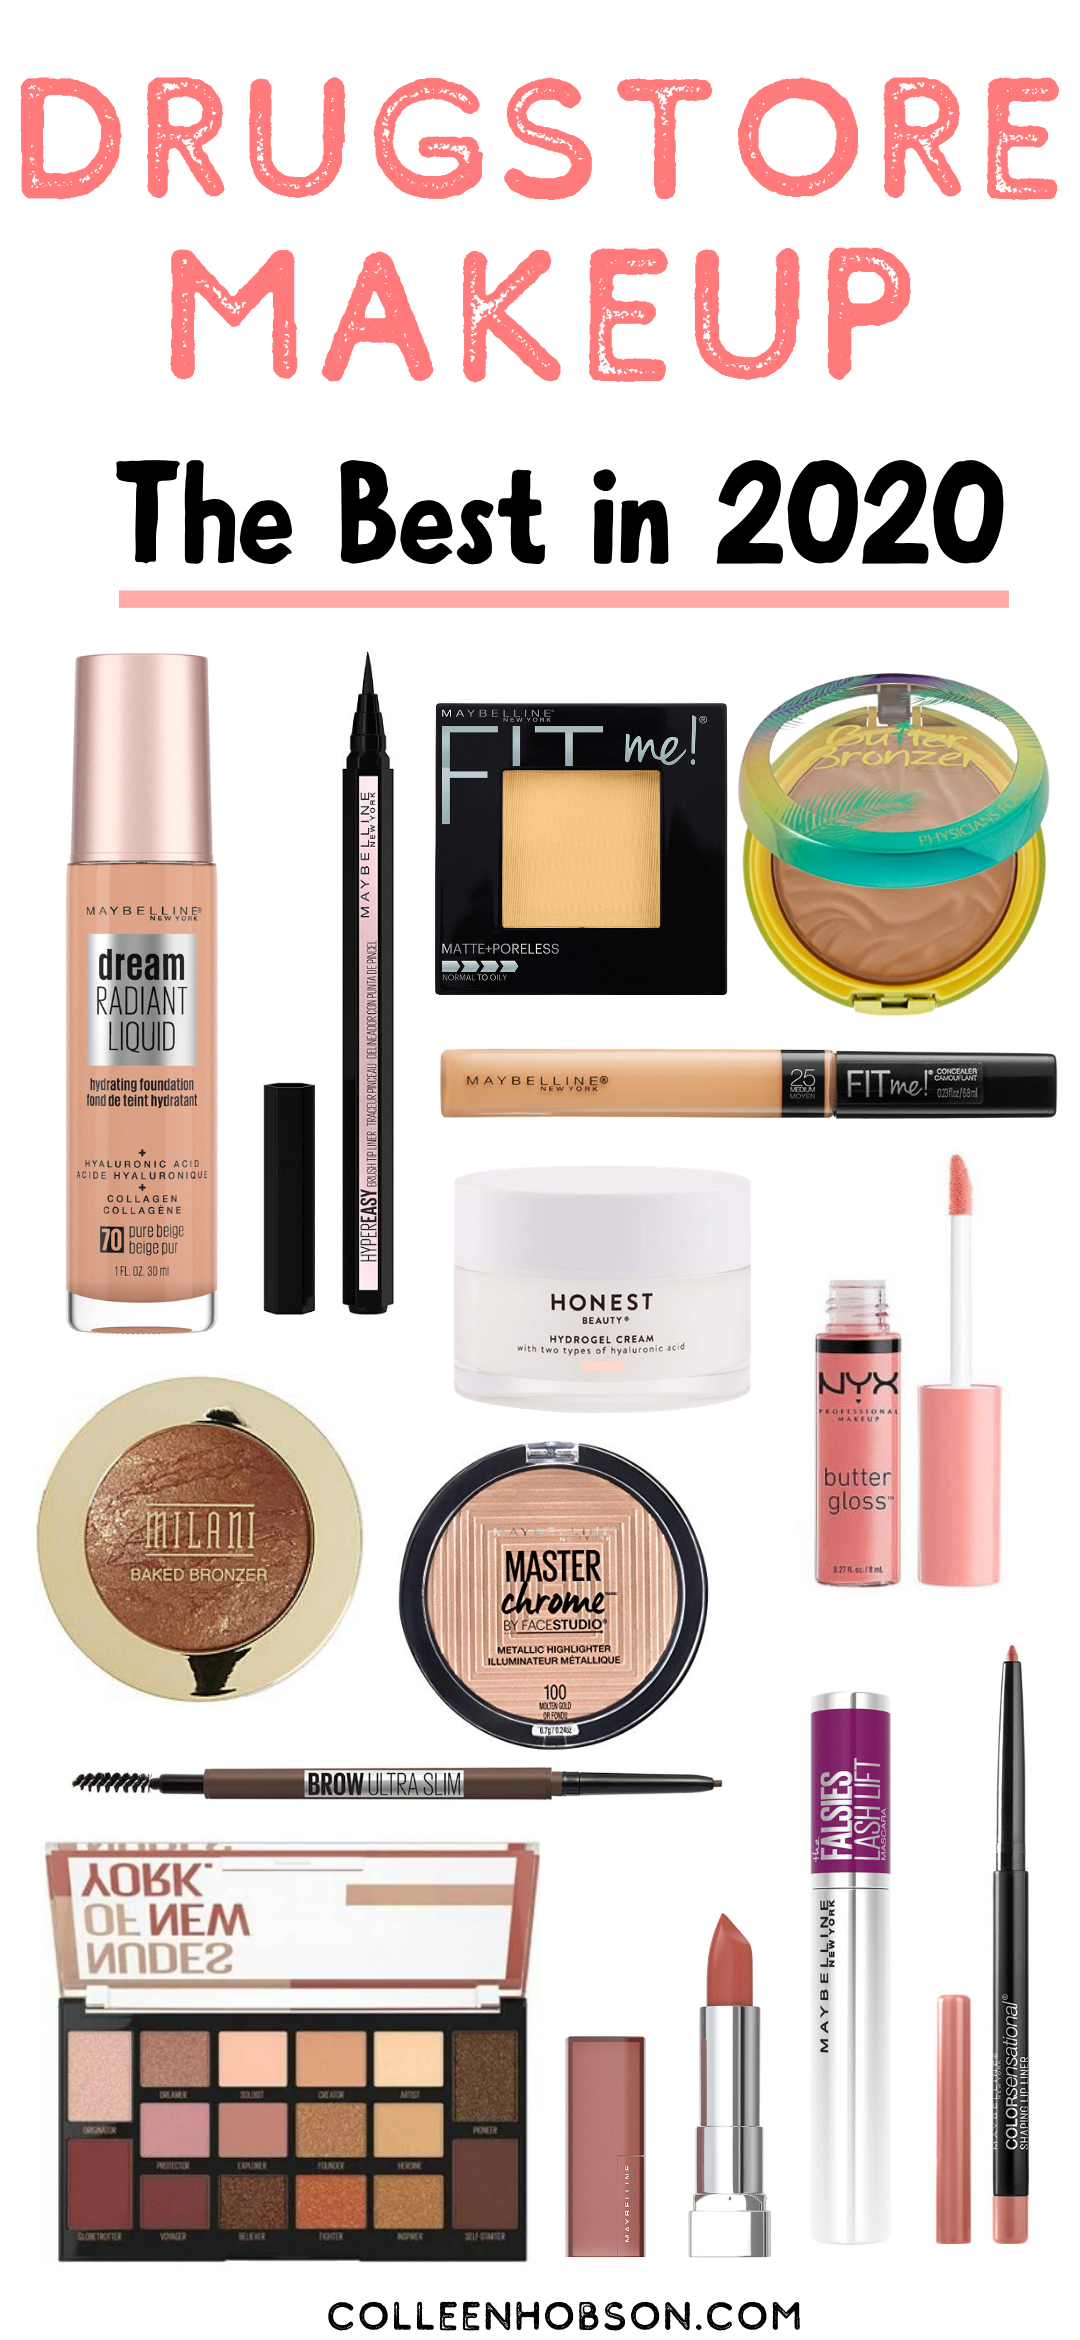 The Best Drugstore Makeup Products In 2020